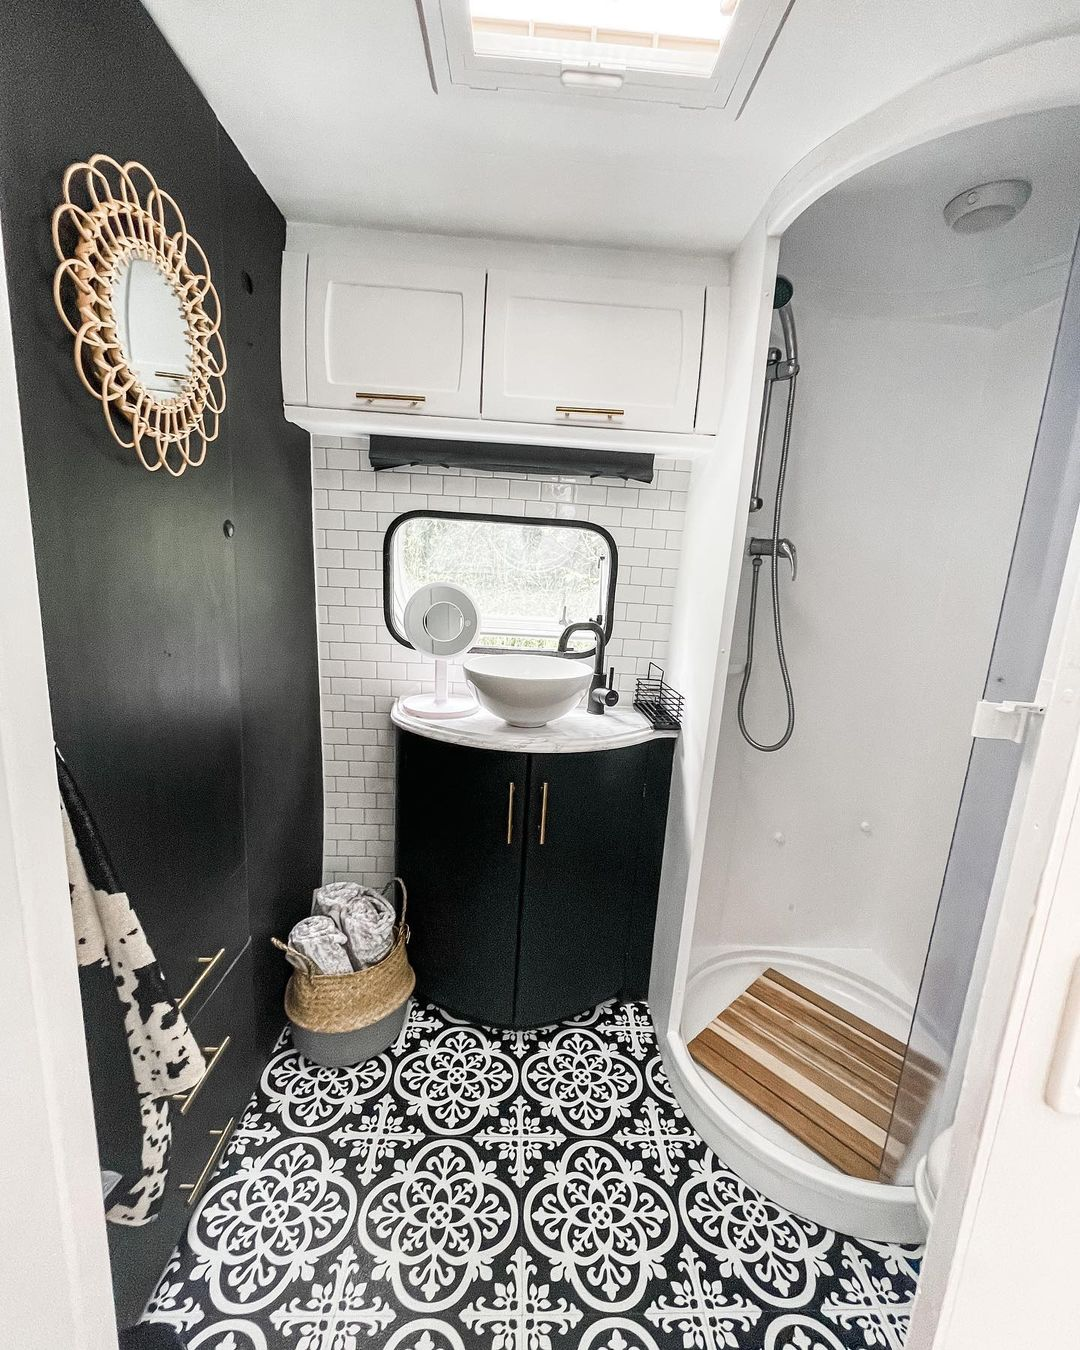 Caravan bathroom with black accent wall and black and white floor tiles.